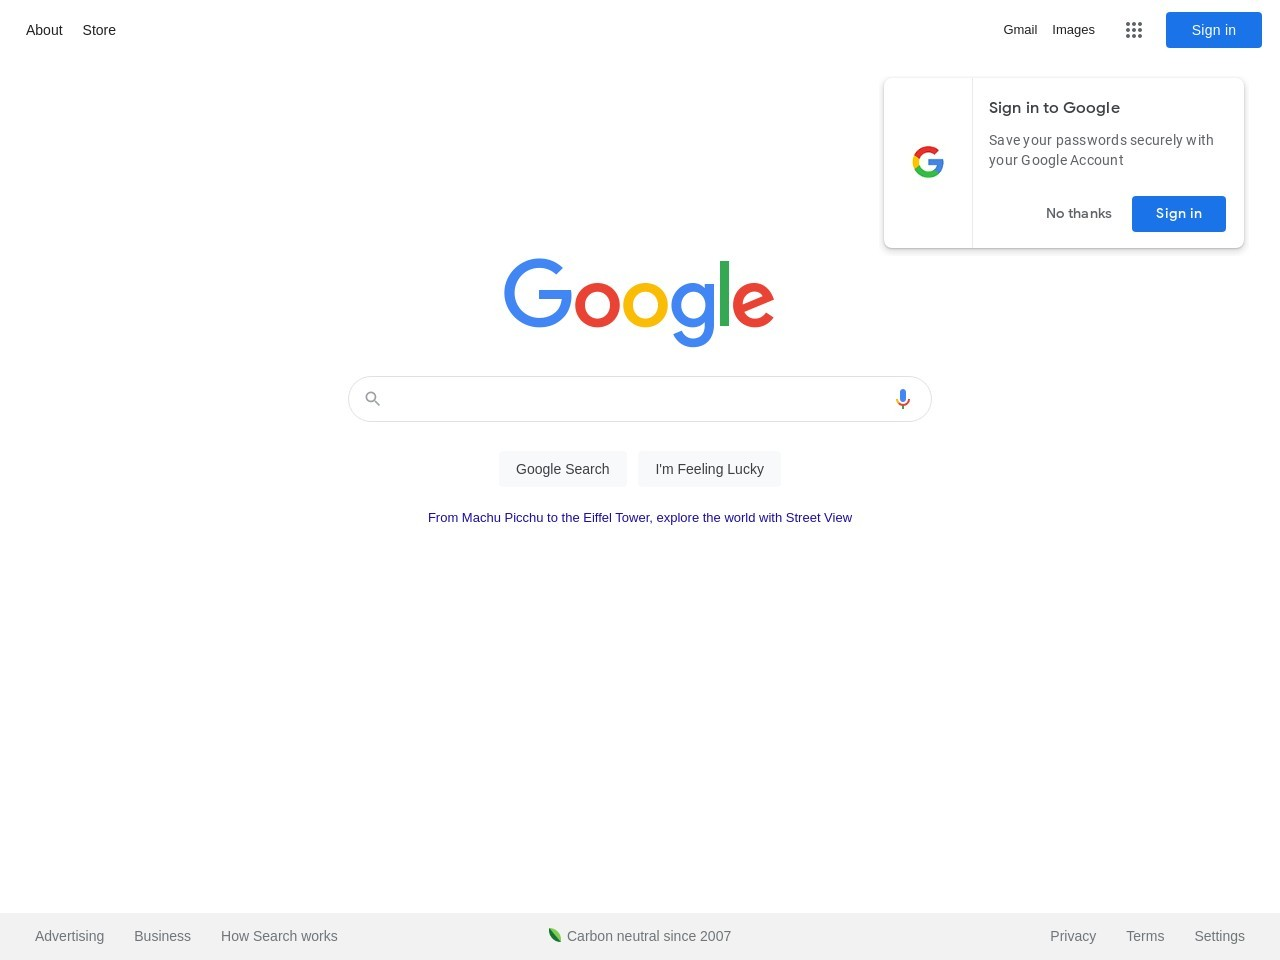 Get The Power of Google - Make Google your default search ...